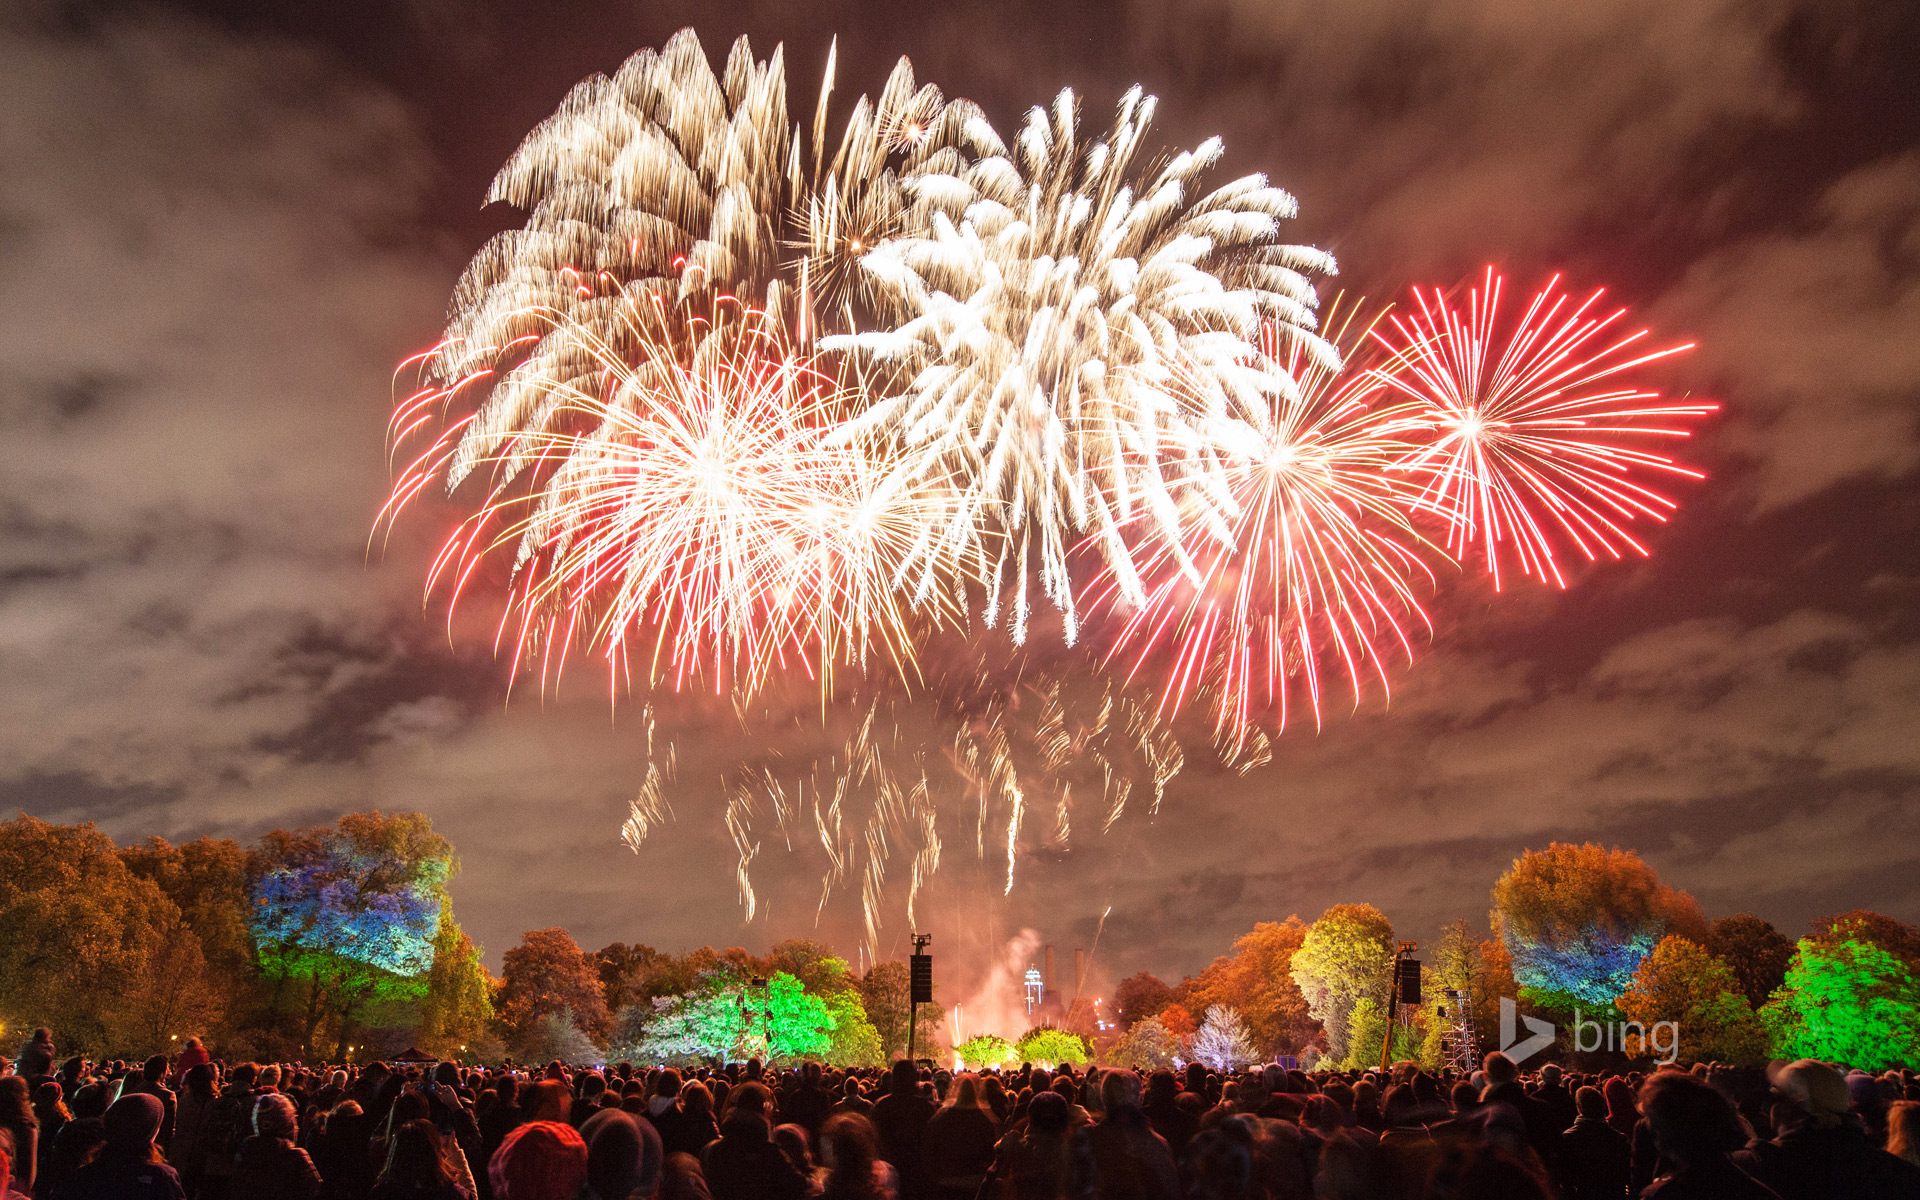 A fireworks display in Battersea Park, London